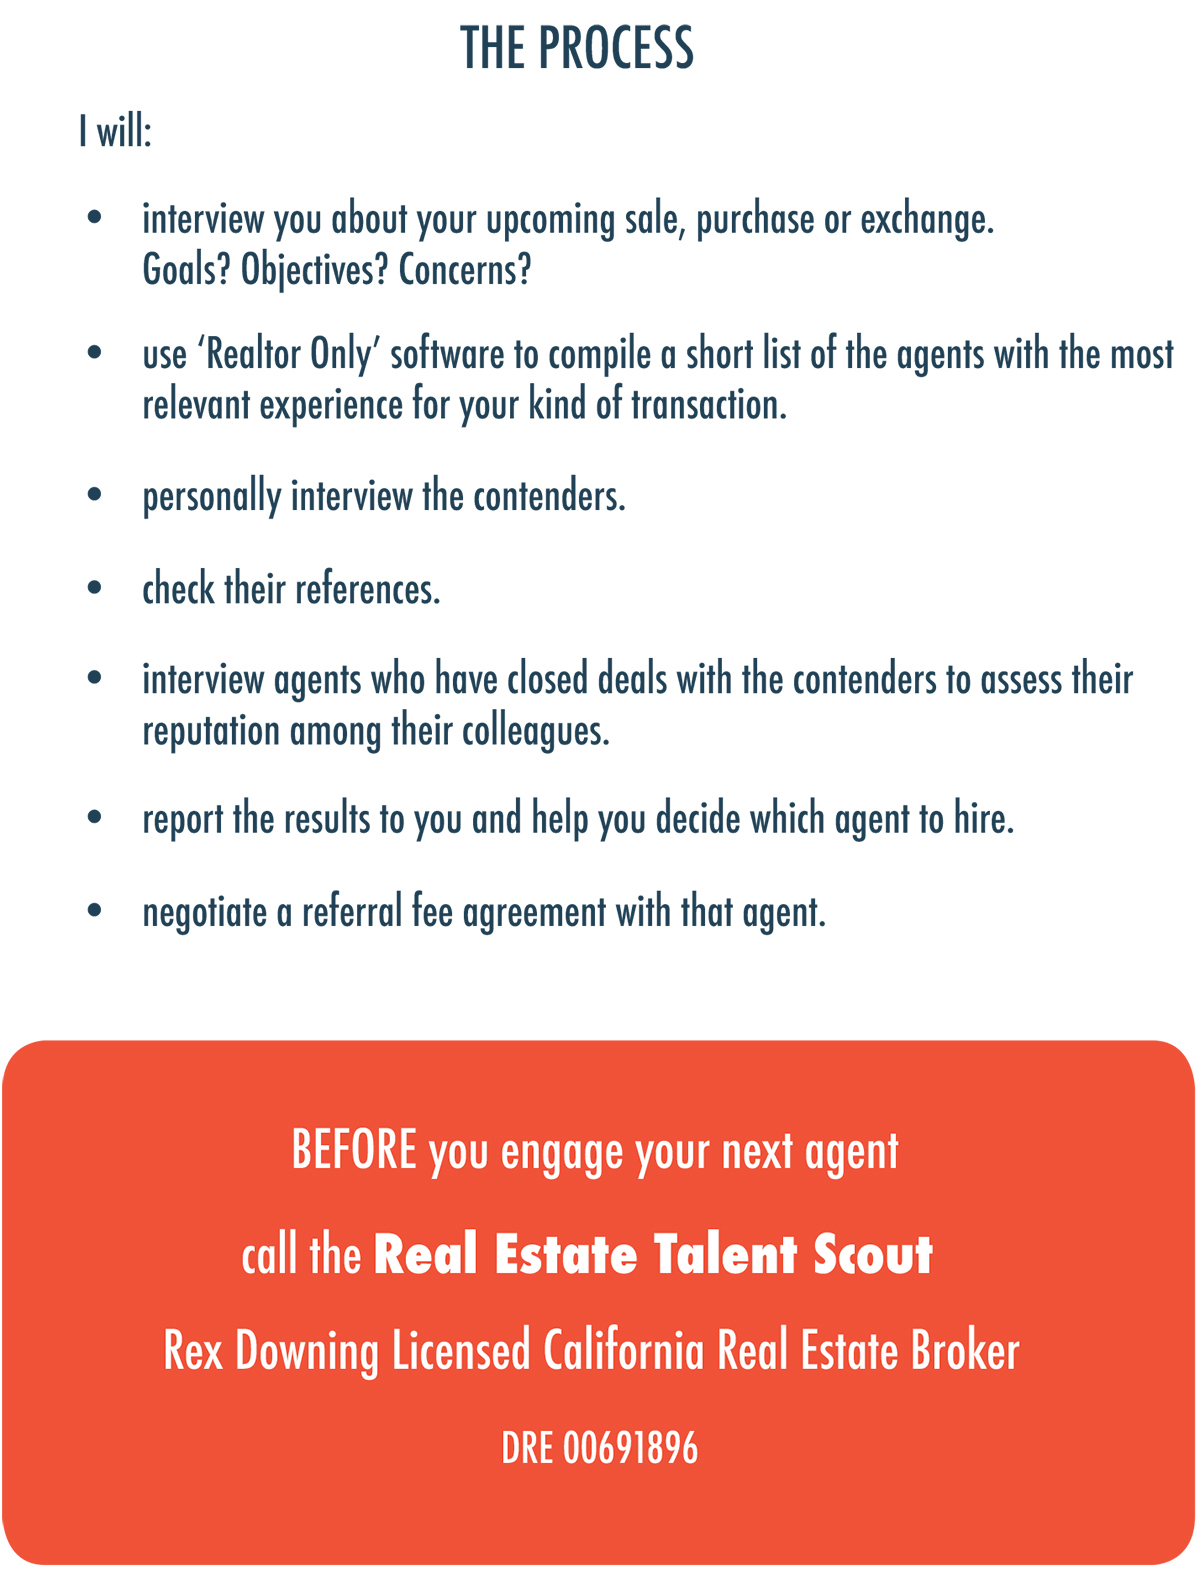 Rex Downing - The Real Estate Talent Scout